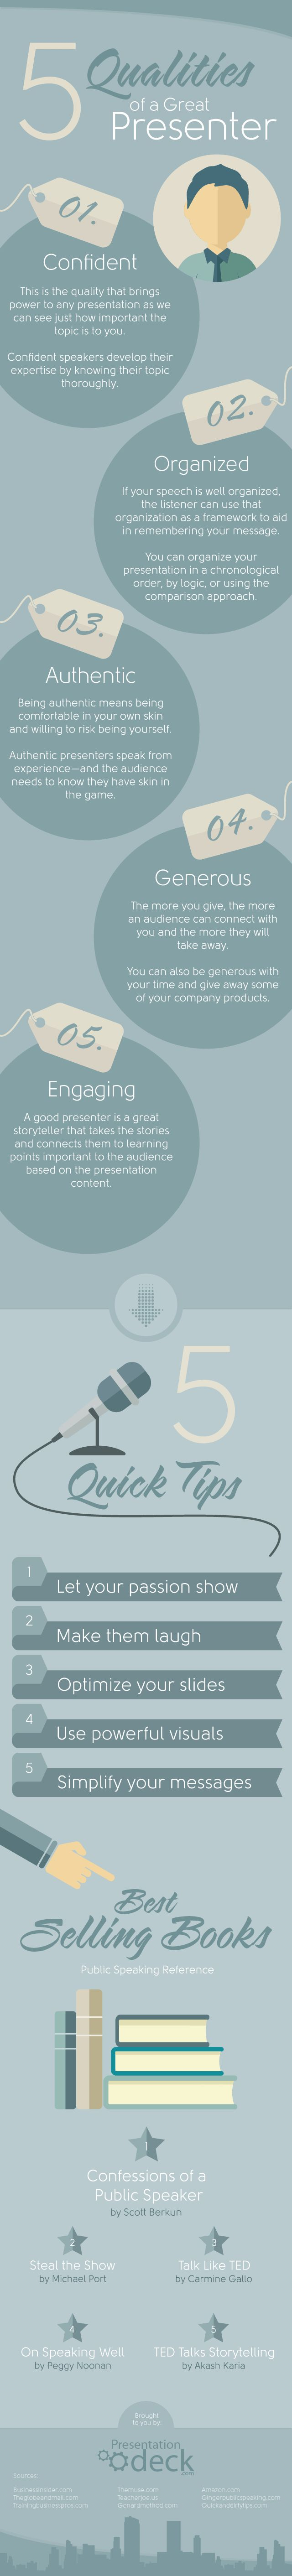 Infographic on qualities of a skillful presenter. #infographics #powerpoint #presentations